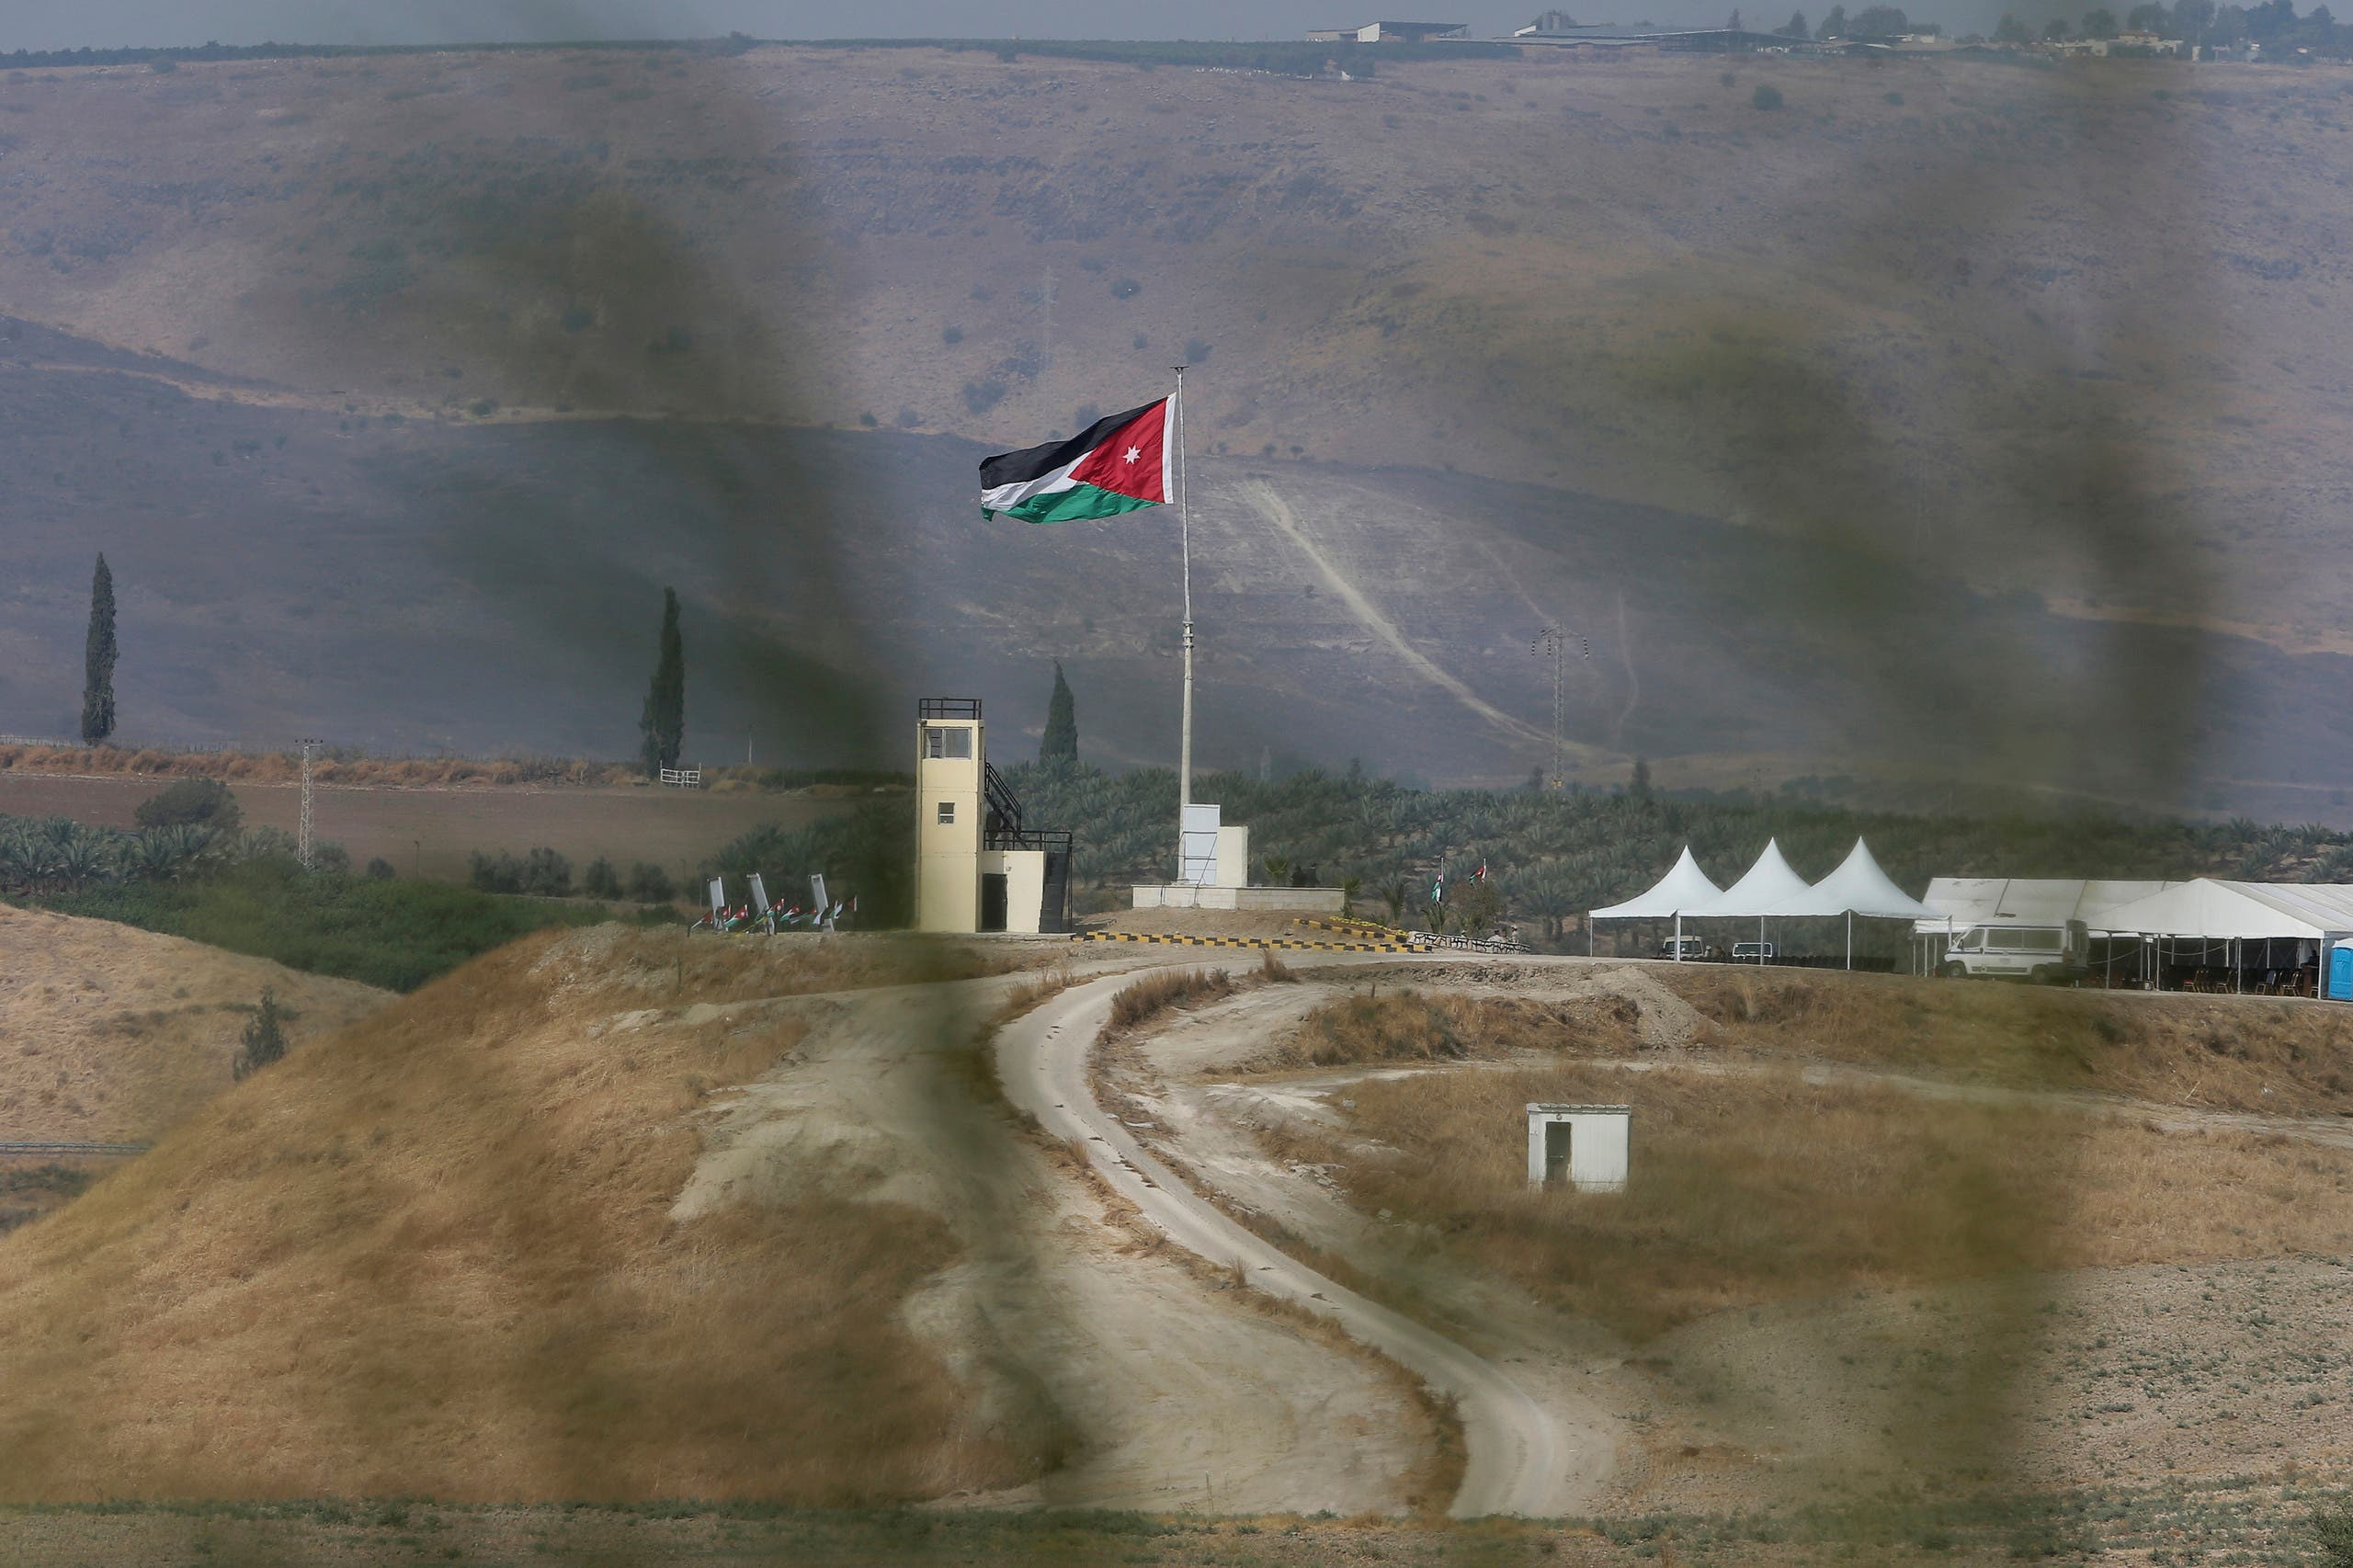 Soldiers stand guard in a watchtower flying Jordanian flags, in the area of ​​Baqoura near the Israeli-Jordanian, border, on Wednesday, Nov. 13, 2019. (AP)